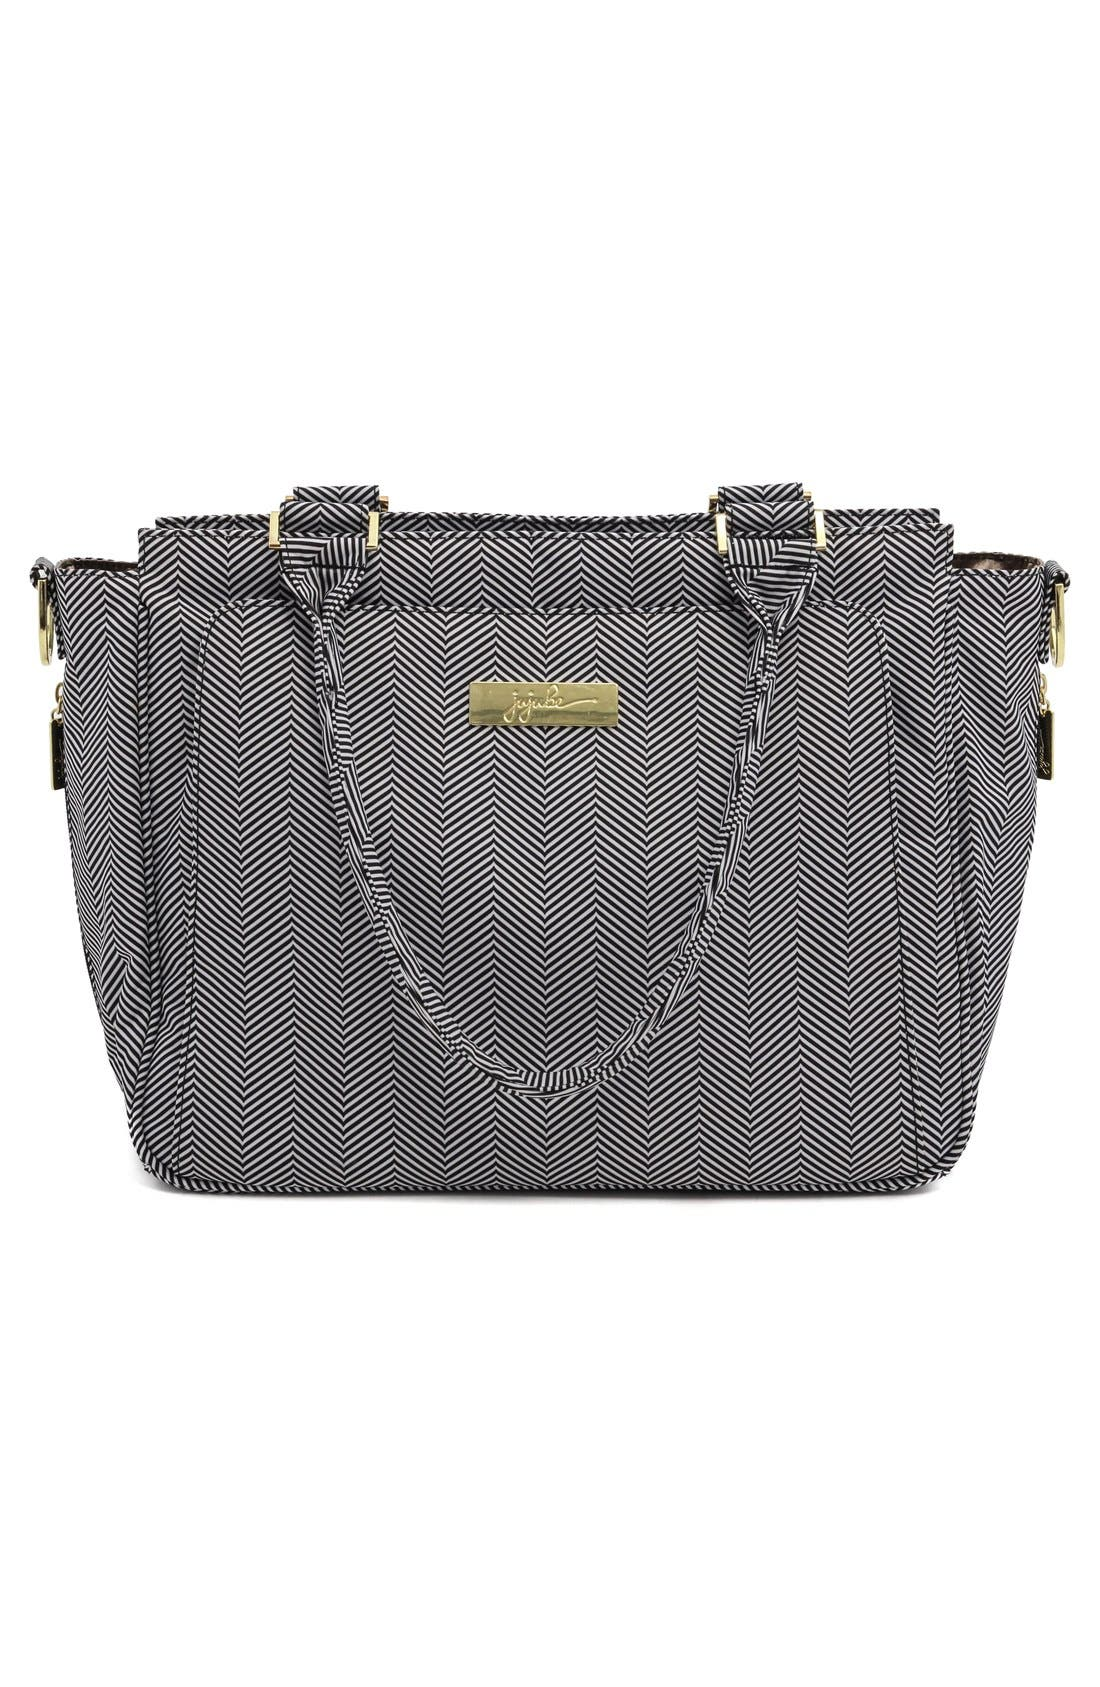 'Be Classy' Messenger Diaper Bag,                             Alternate thumbnail 5, color,                             The Queen Of The Nile